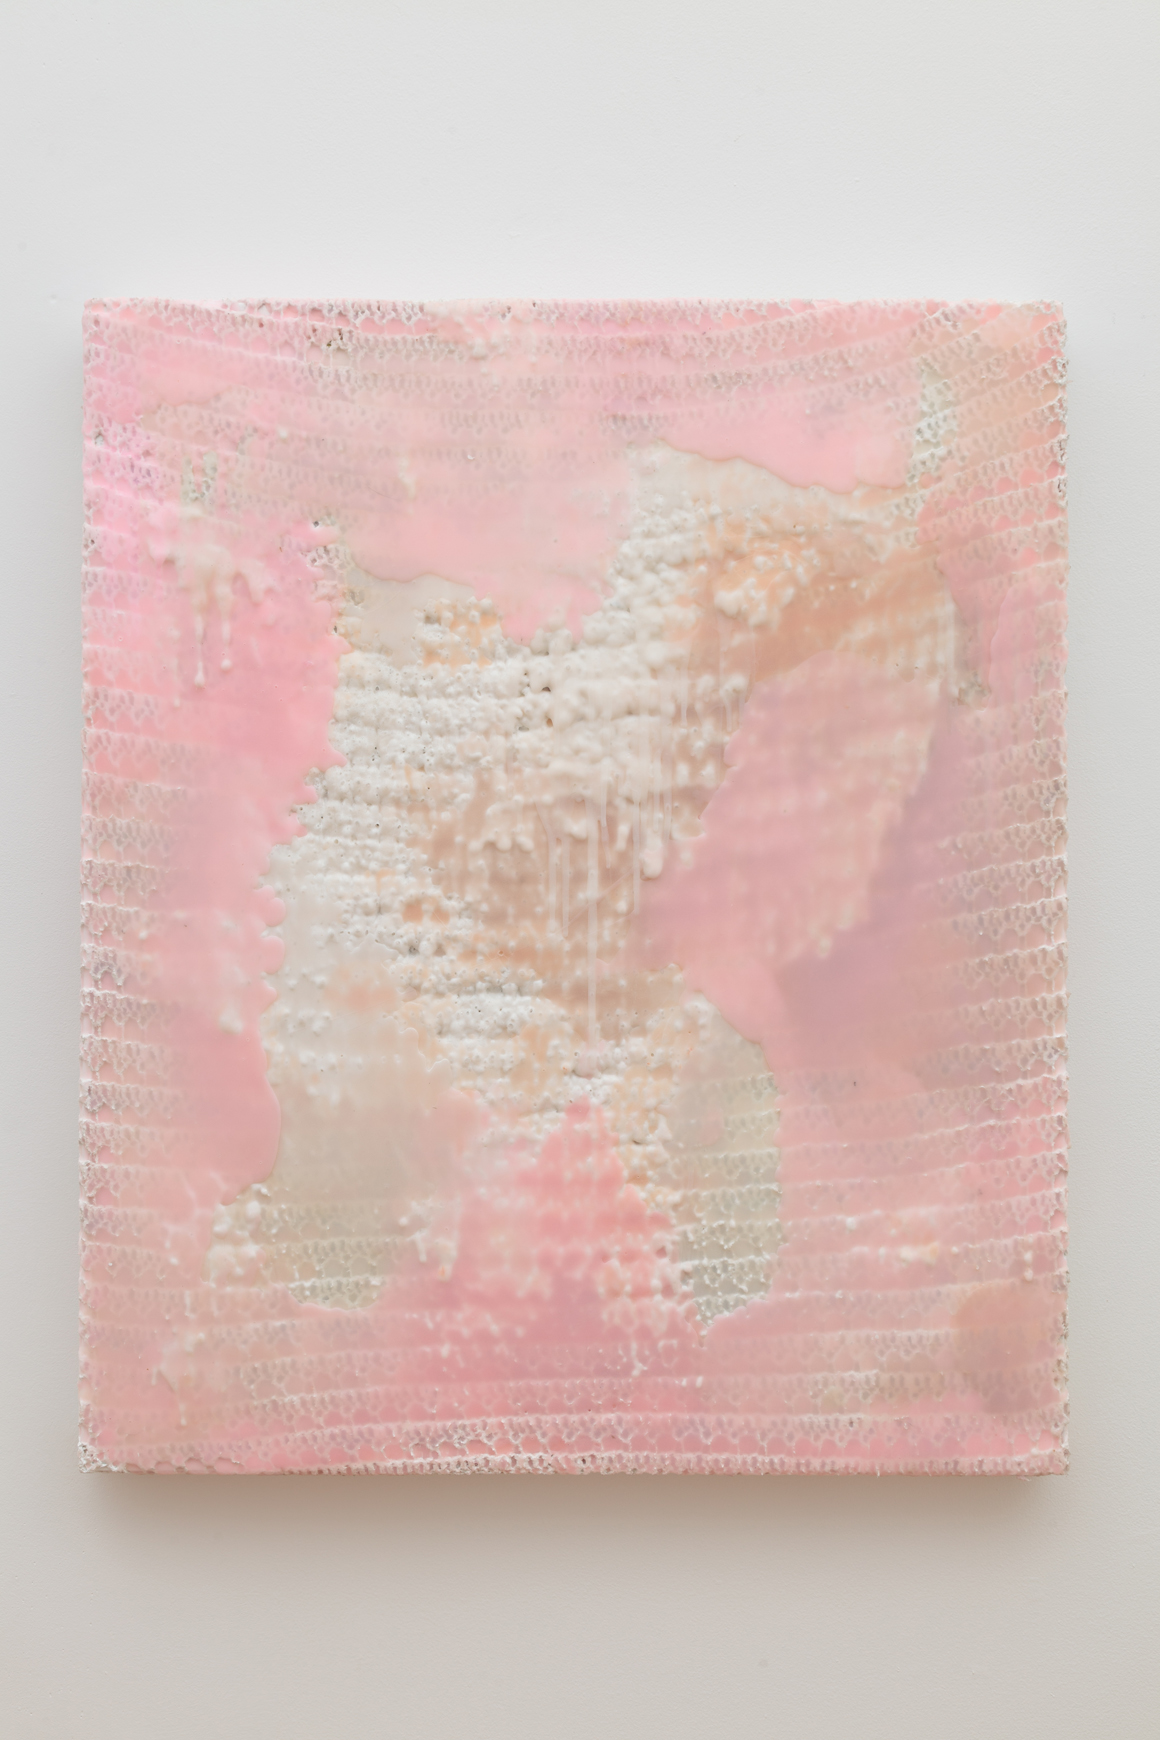 "<p><span class=""name"">Amber Cobb</span><br><em>Afterward</em><span class='media'>Blanket, acrylic, silicone</span>42.5 x 35in<br>2015<br><a class='inquire' href='mailto:info@gildargallery.com?subject=Artwork Inquiry ACOB0047&body=I am interested in finding out more about Afterward by Amber Cobb'>Inquire</a></p>"